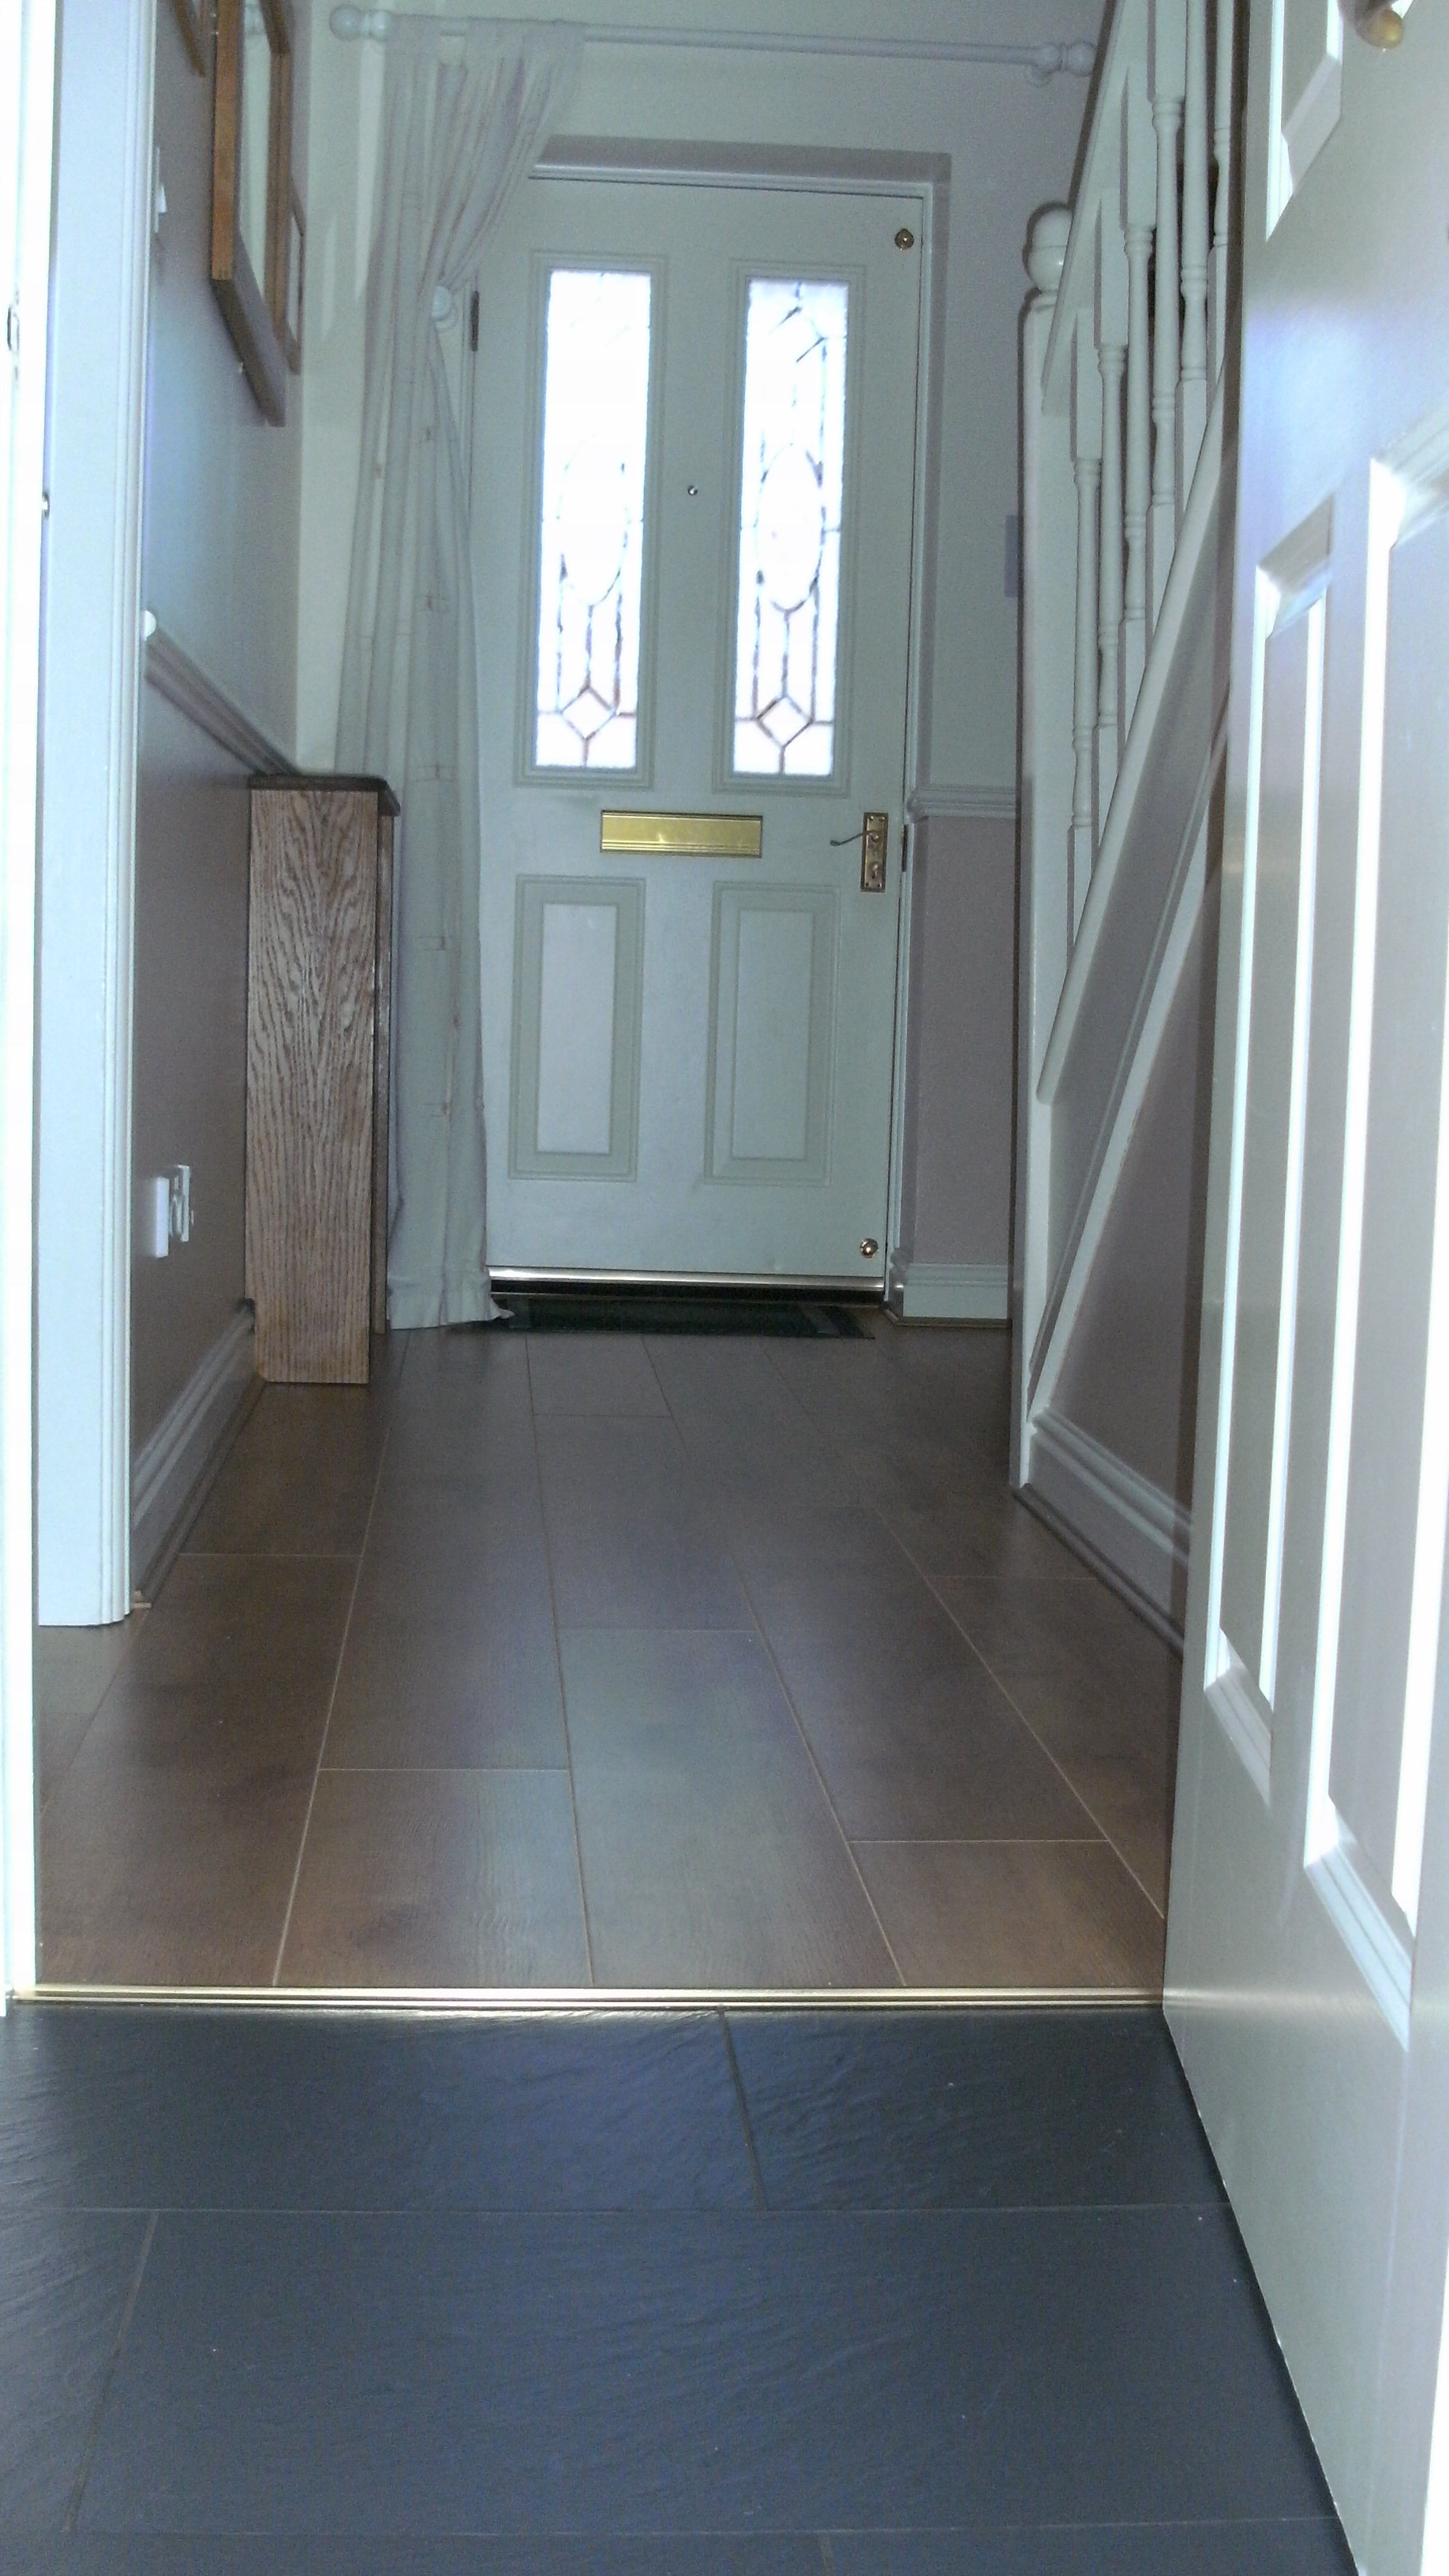 Laminate and tiled floor